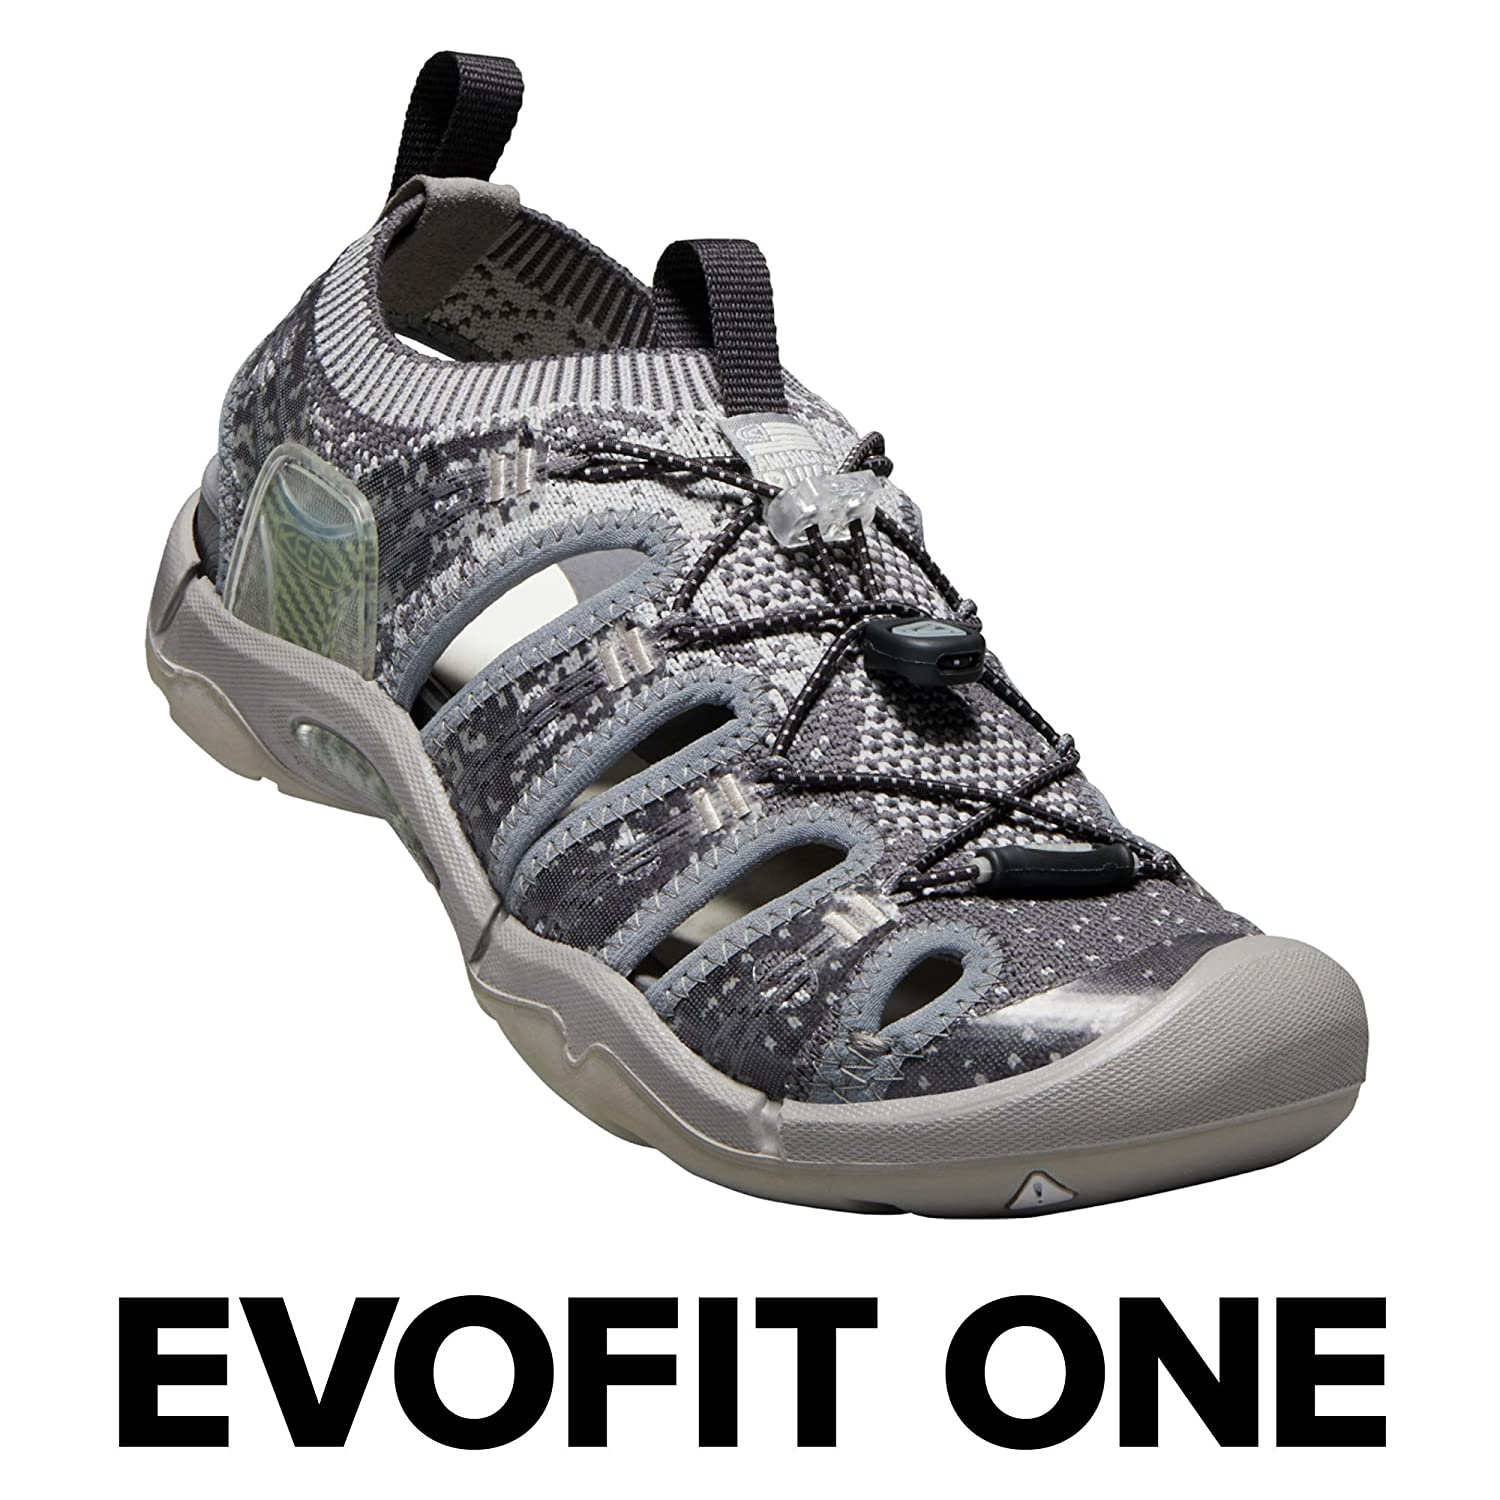 KEEN Women's EVOFIT ONE Water Sandal for Outdoor Adventures B071R4YS44 10 M US|Paloma/Raven